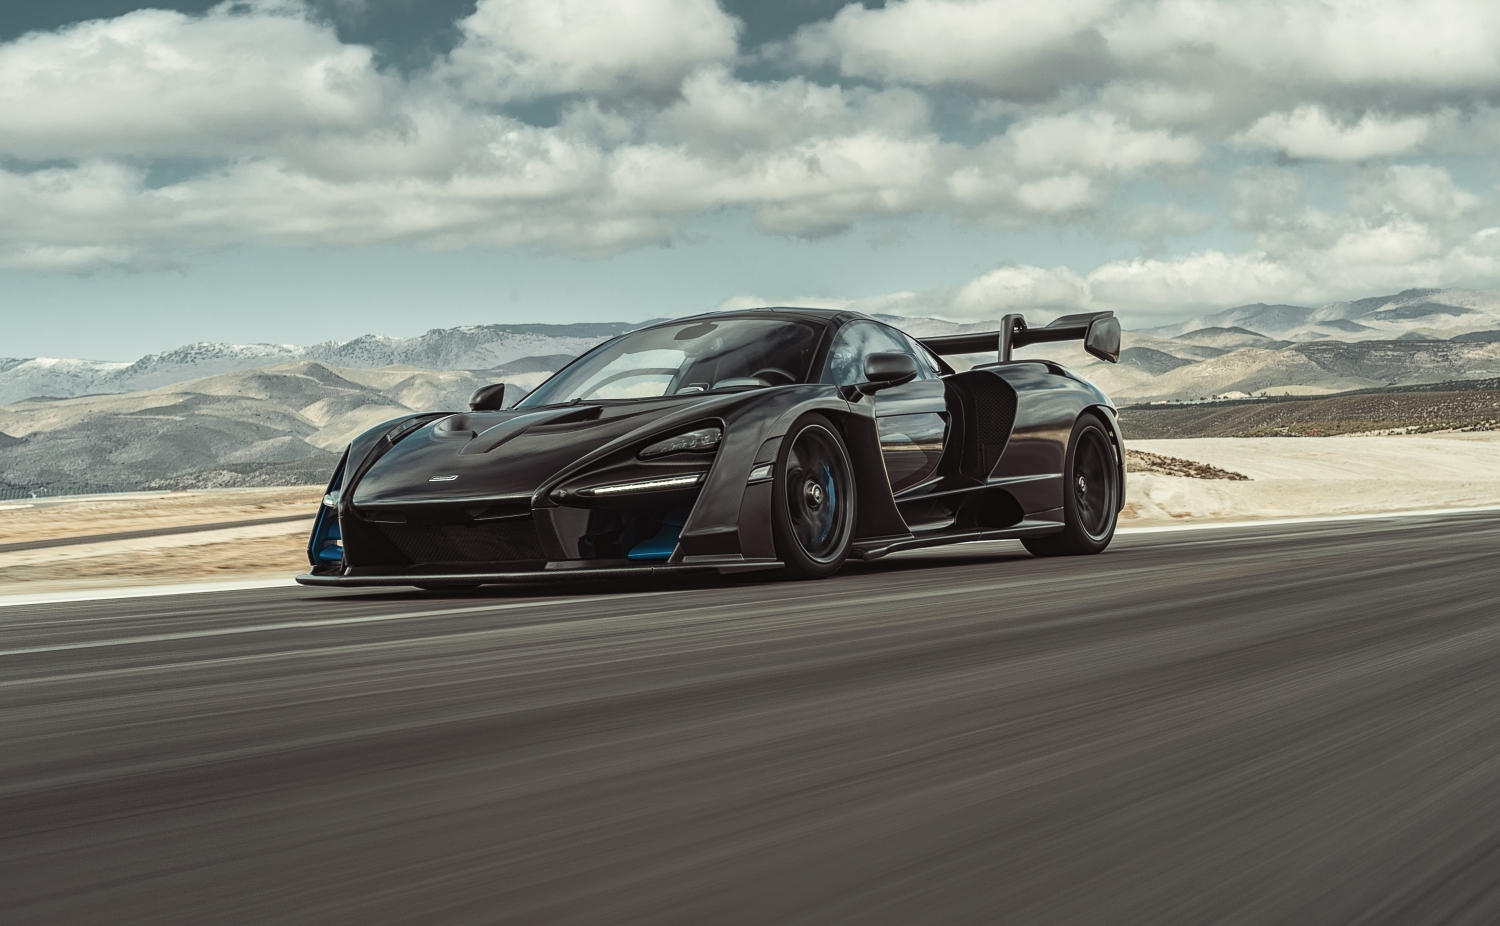 The McLaren Senna: Automotive Masterpiece